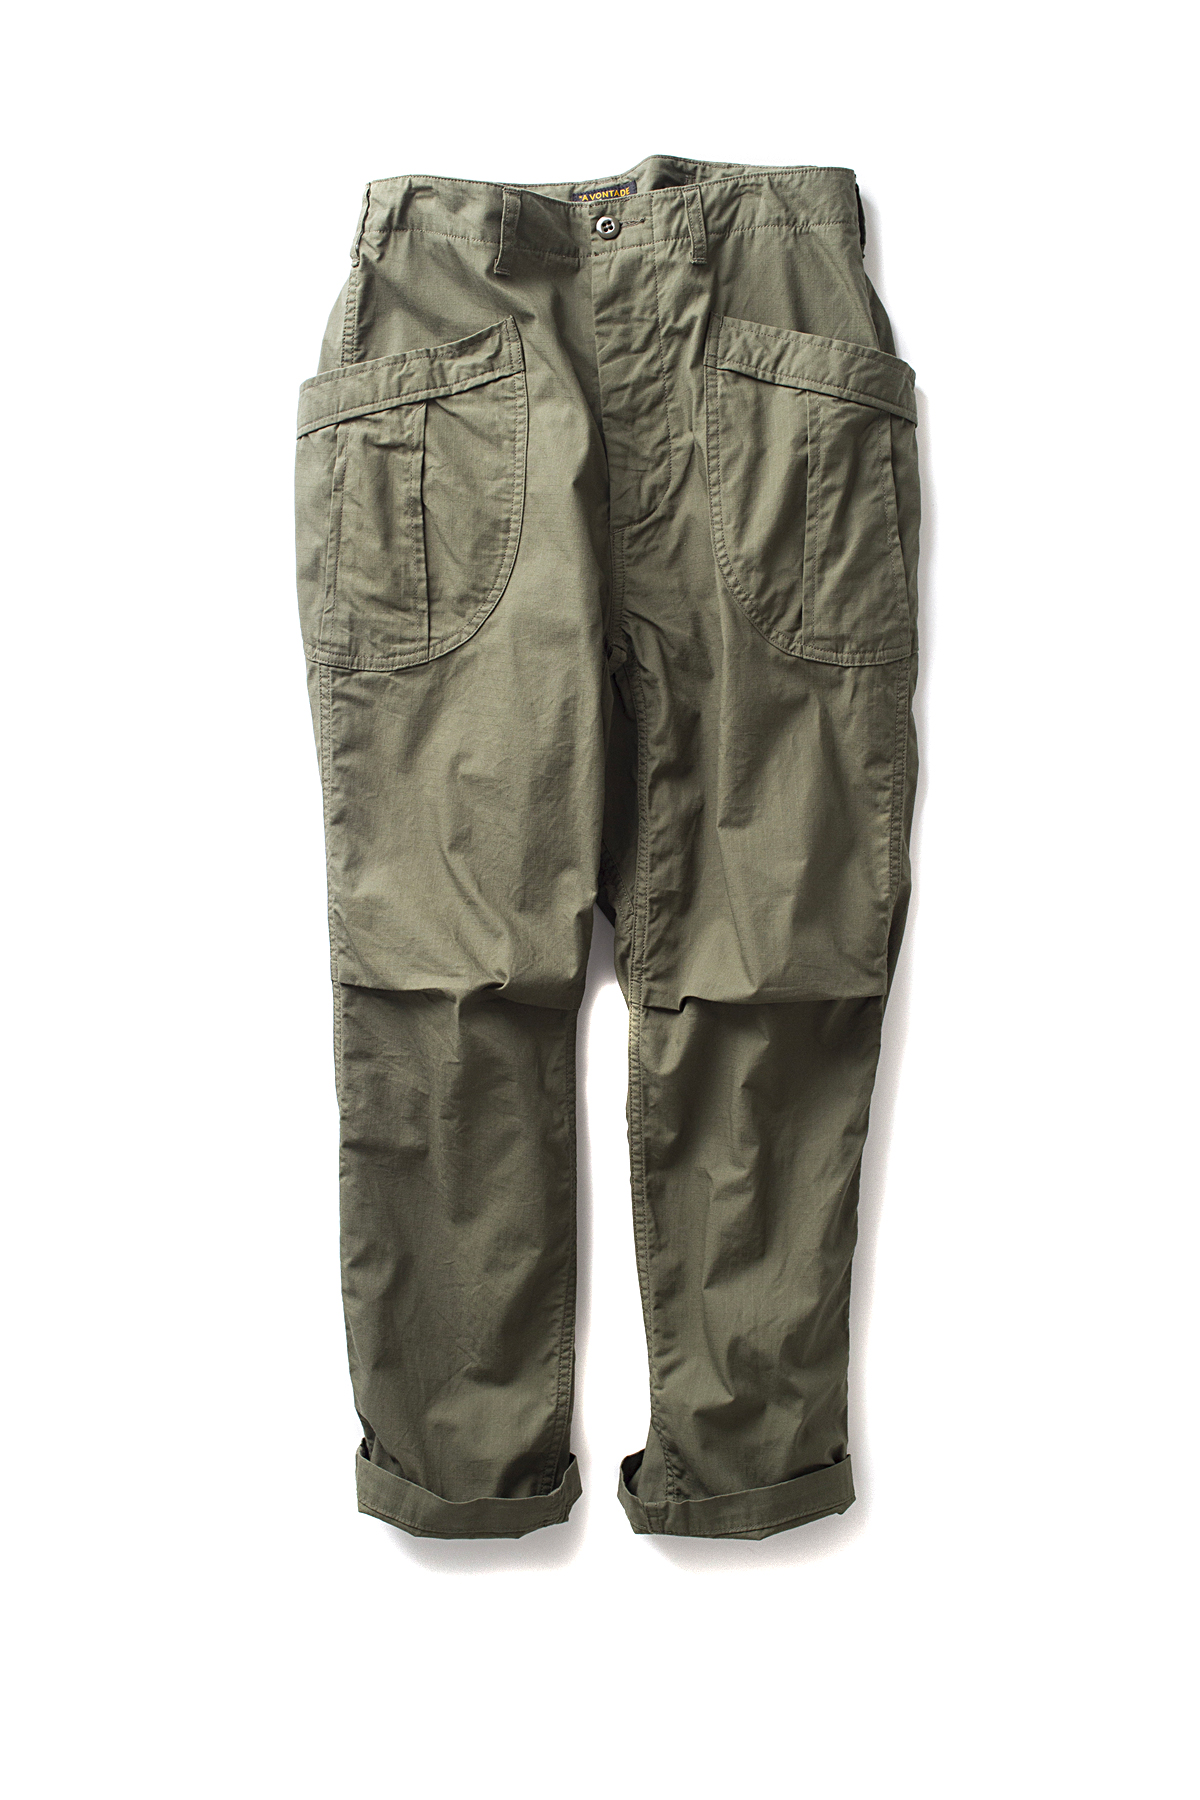 A vontade : Fatigue Trousers Ripstop (Olive)